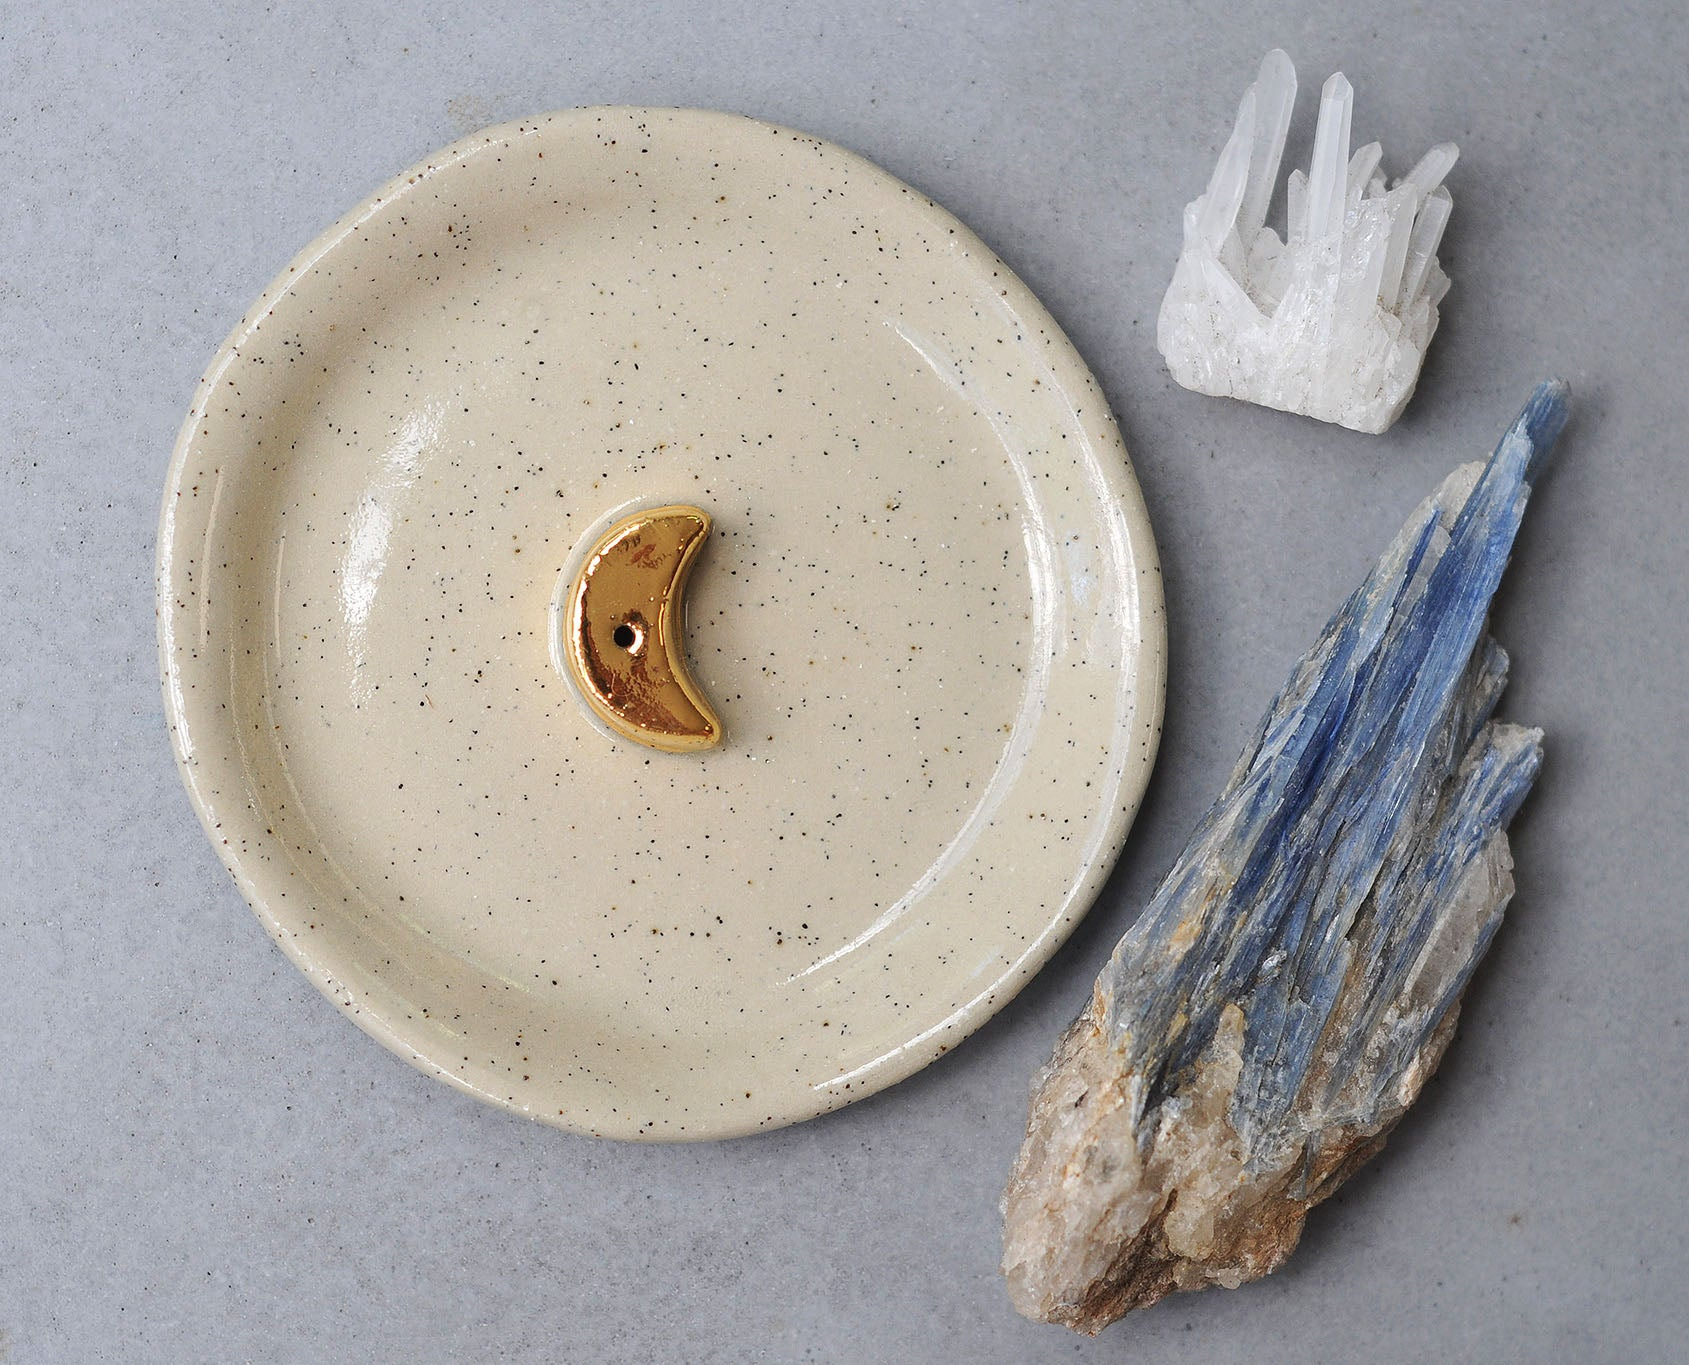 GOLD MOON INCENSE HOLDER - CLEAR GLAZE - SALT & PEPPER CLAY